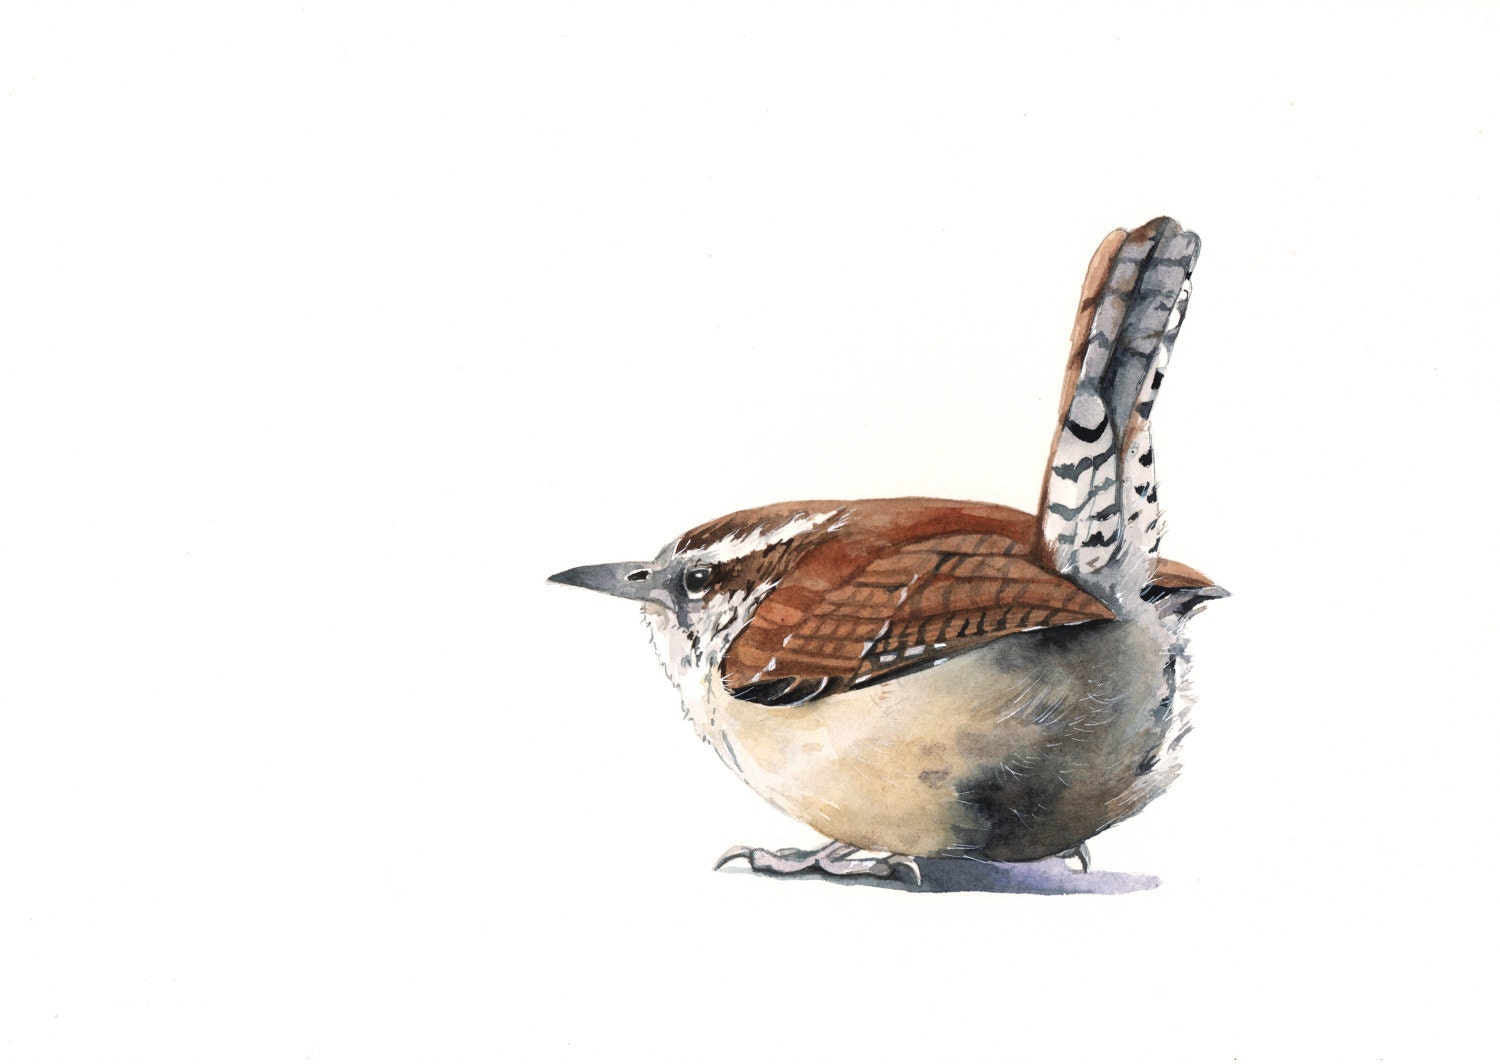 Wren Painting - W001 bird Print of watercolor painting A4 - Splodgepodge